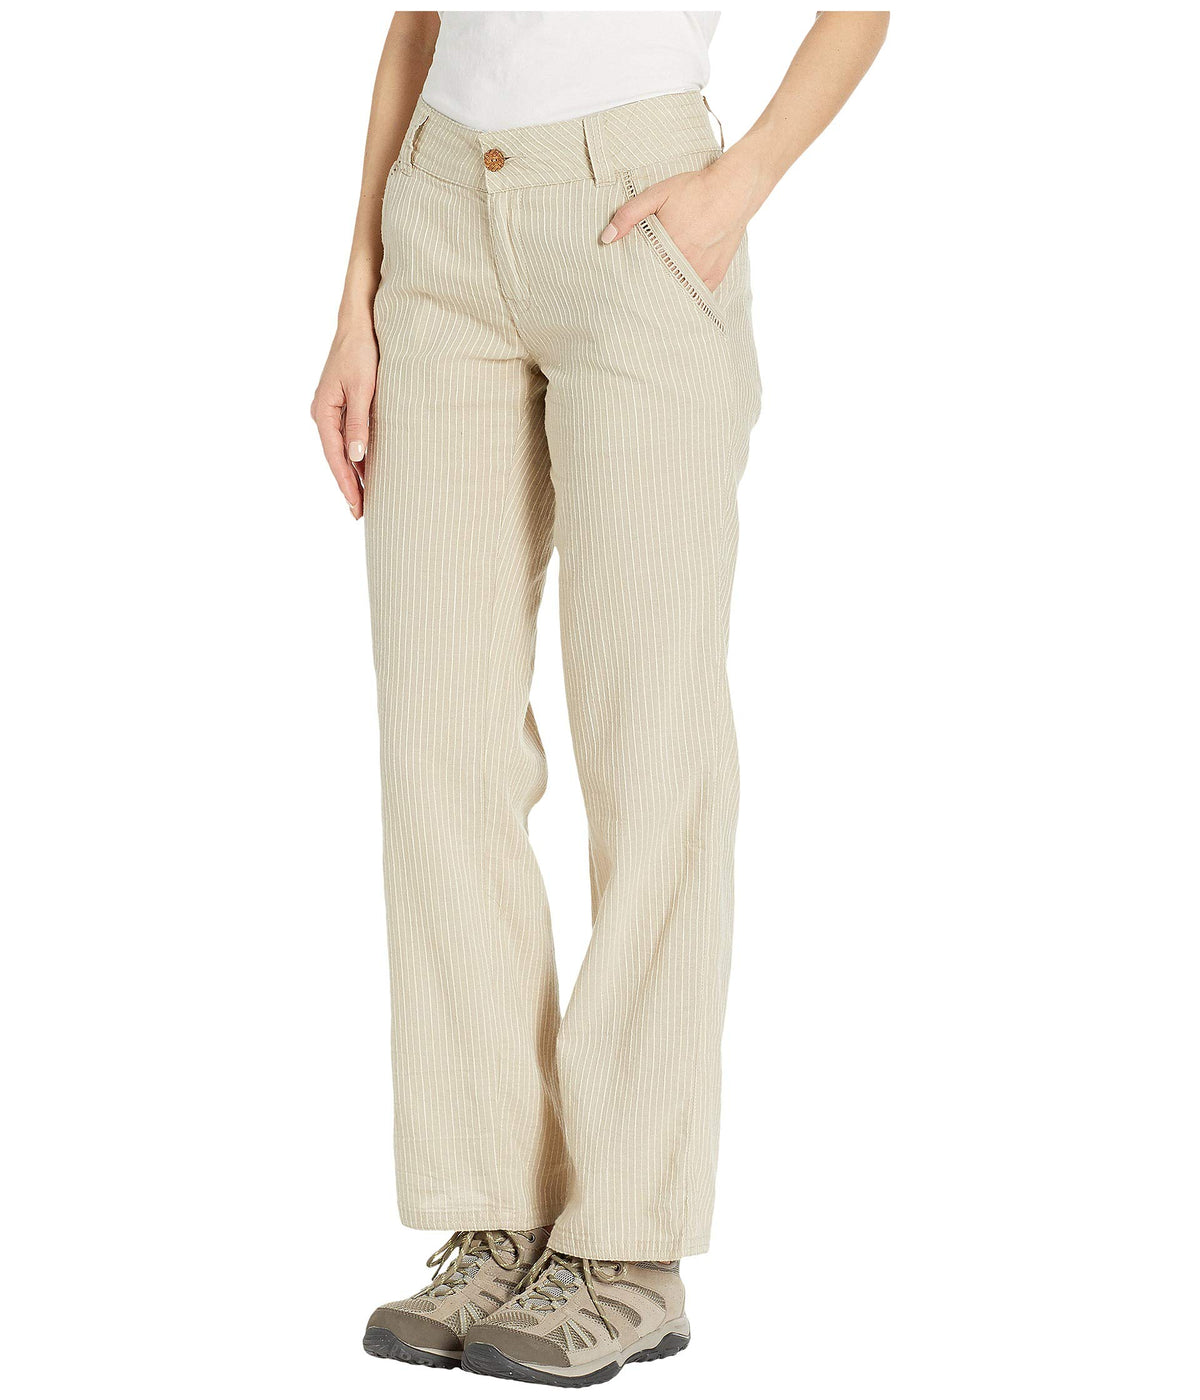 Seaside Pants Relaxed Fit